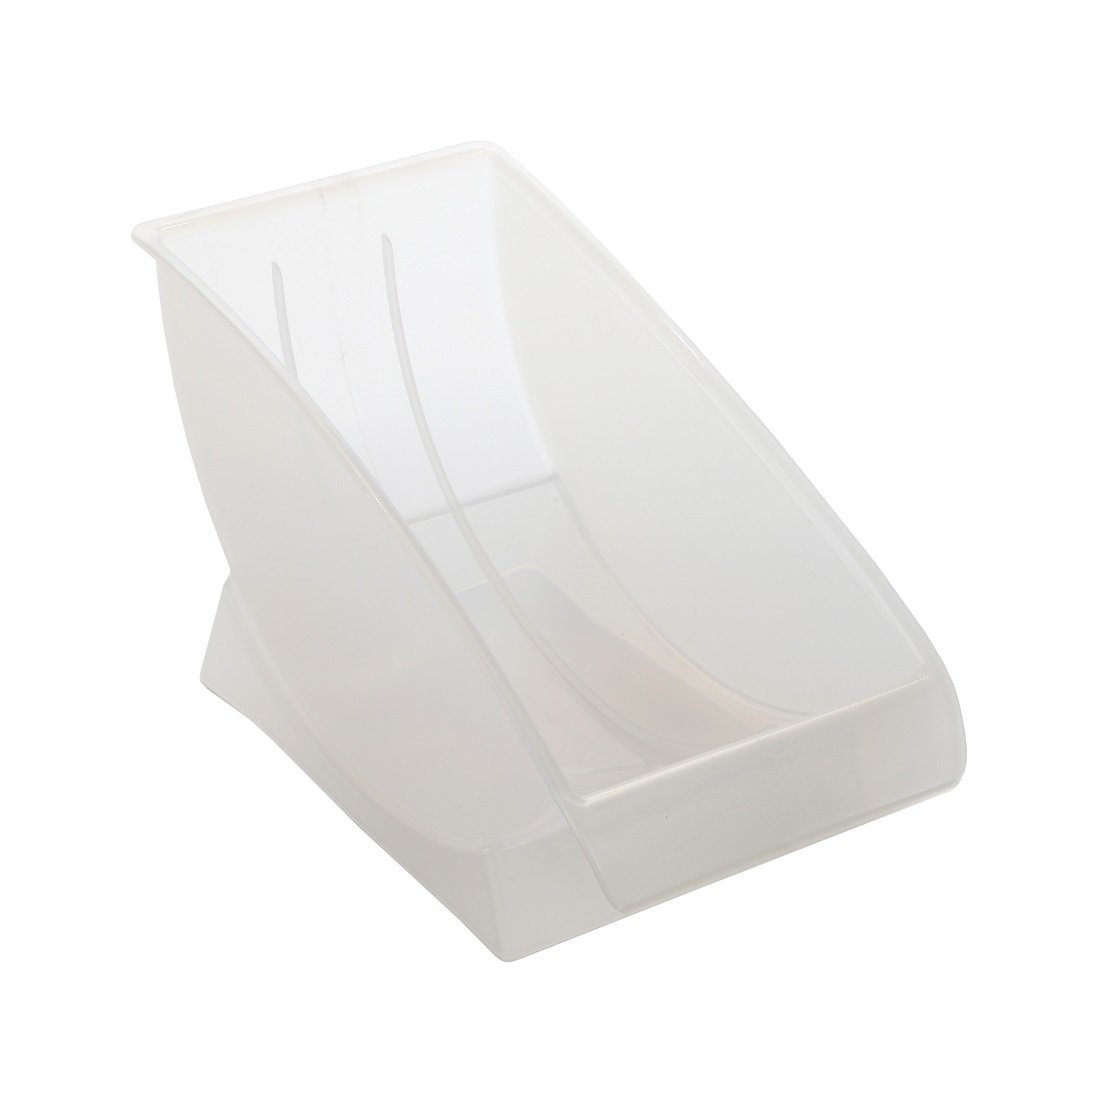 Home-X 9-Inch, Salad/Dessert Plate Holder. Holds Plates in Upright Position